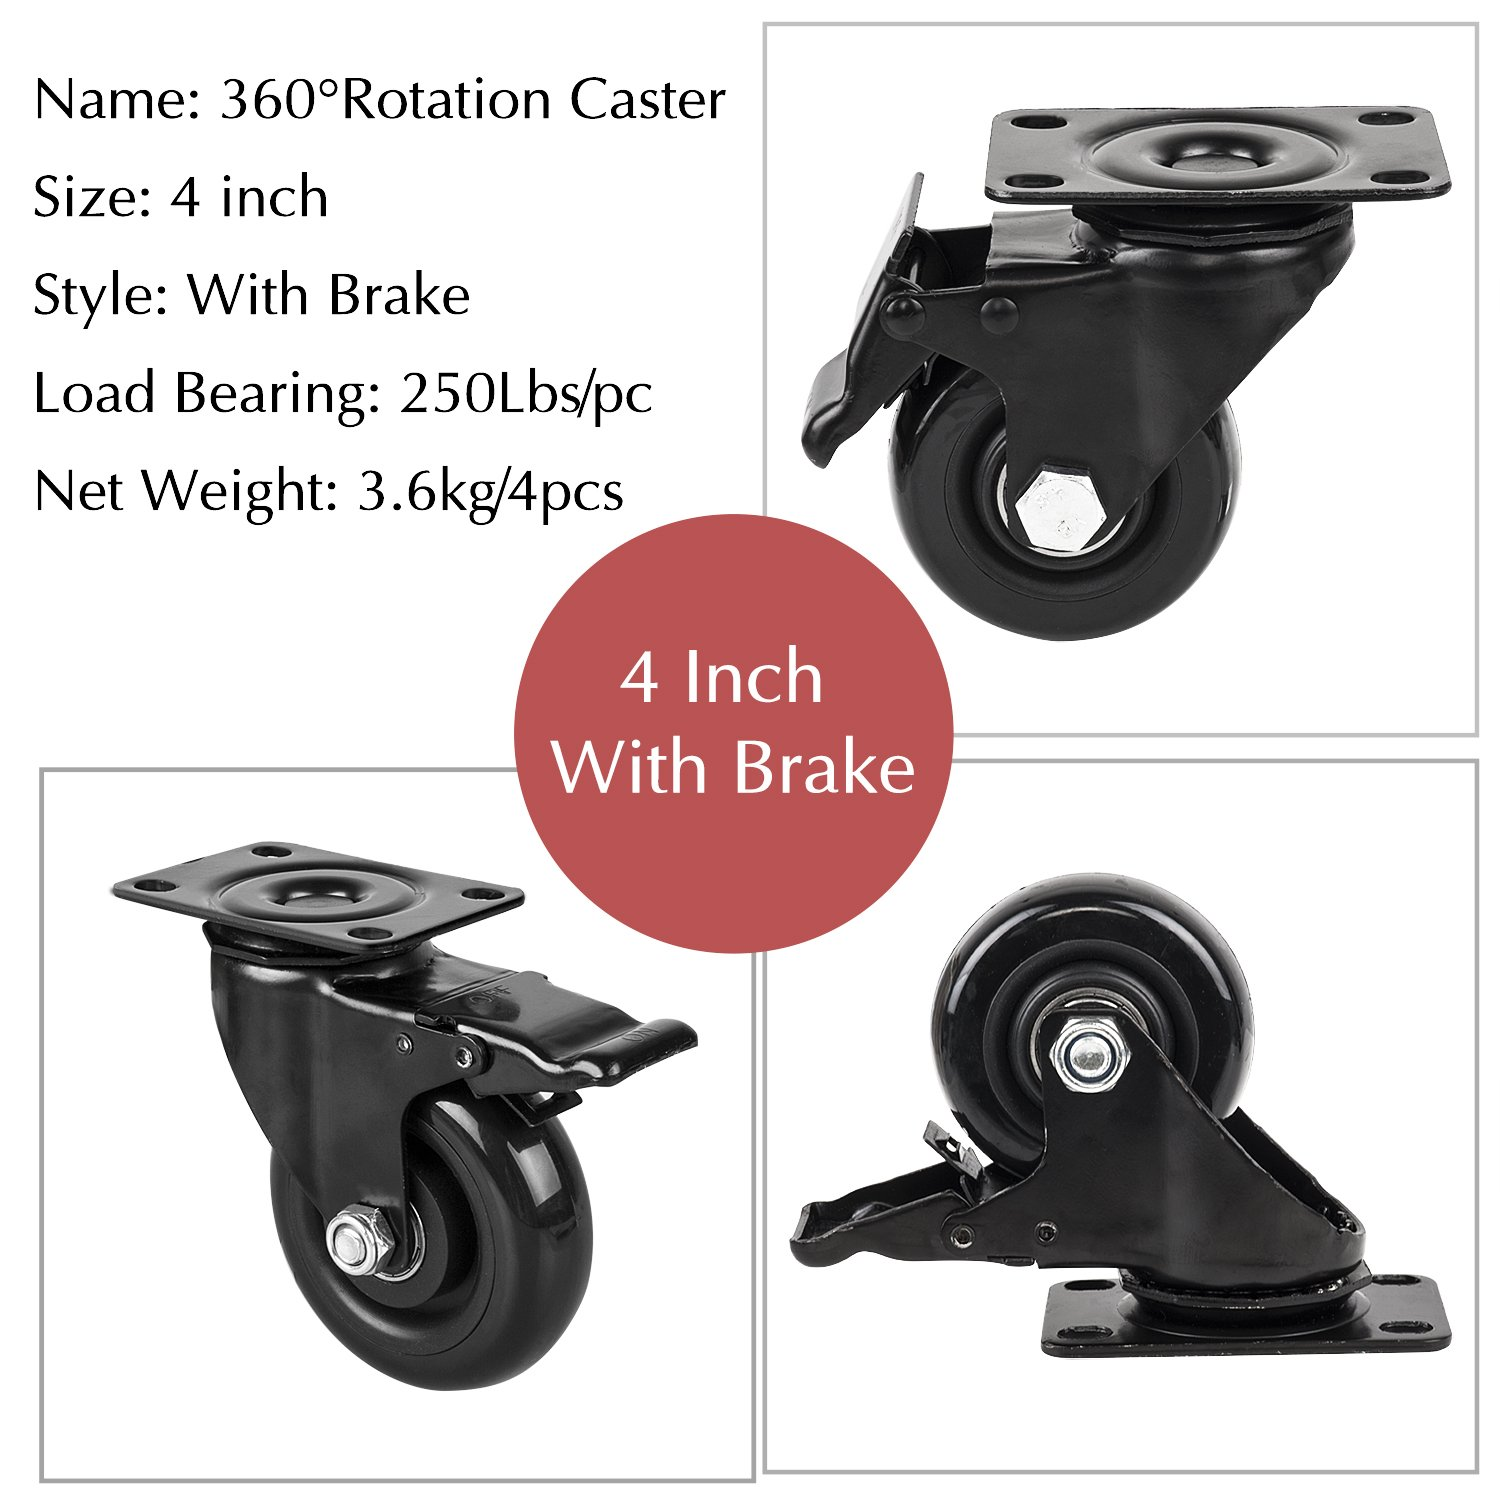 4'' Swivel Plate Caster Wheels, PRITEK Heavy Duty Metal Caster Wheels Lock the Top Plate and the Wheels Replacement for Industrial Trailer or Large Home Furniture (bearing 250lbs each, set of 4) by PRITEK (Image #3)